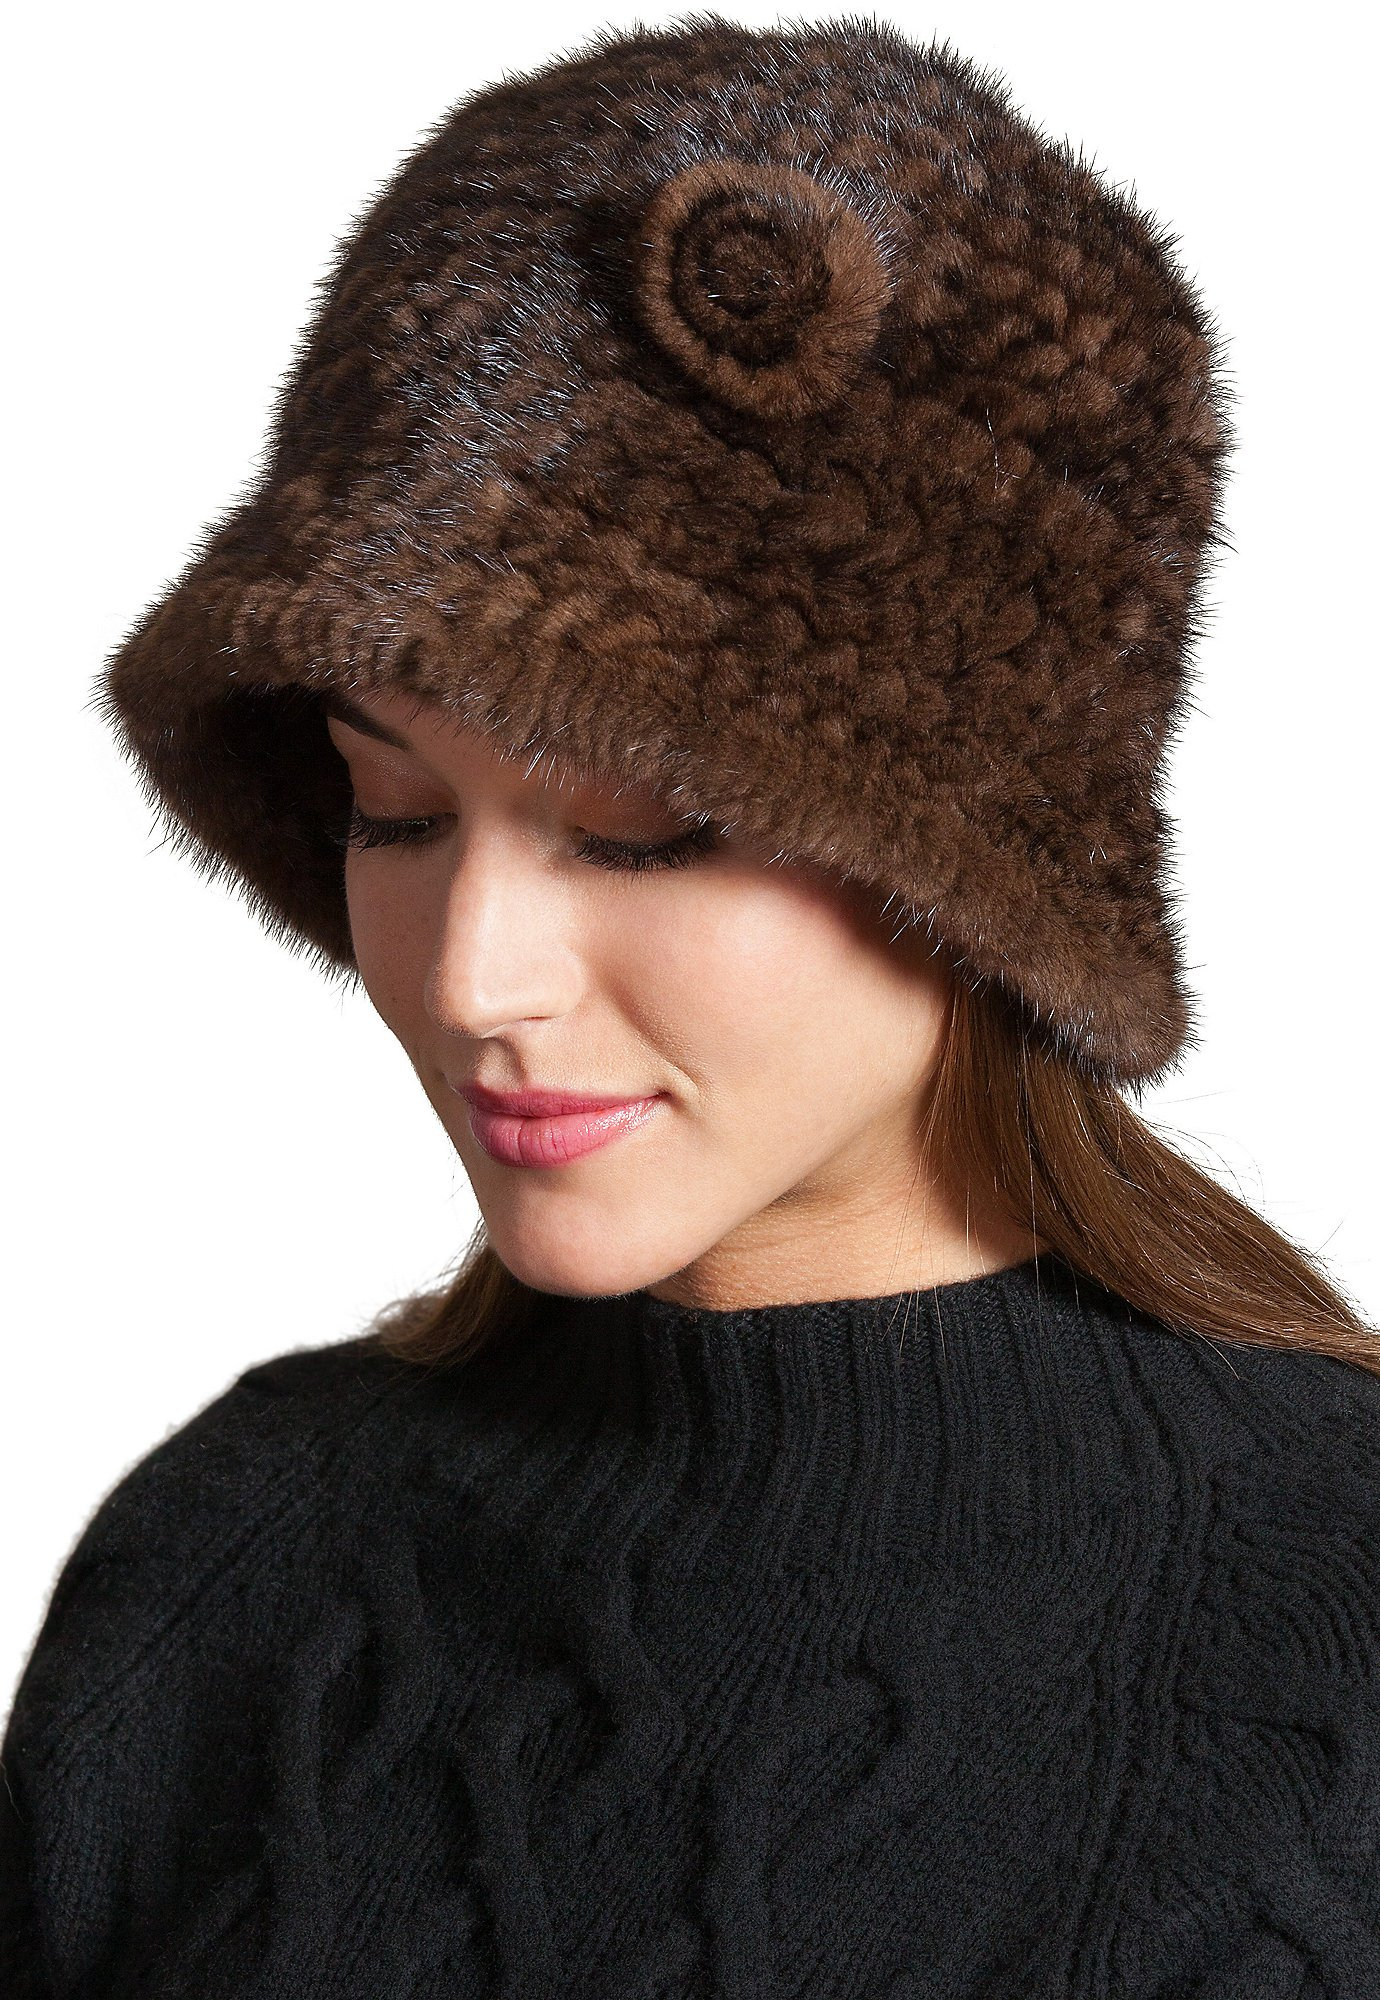 Overland Sheepskin Co Knitted Danish Mink Fur Cloche Hat With Removable Floret by Overland Sheepskin Co